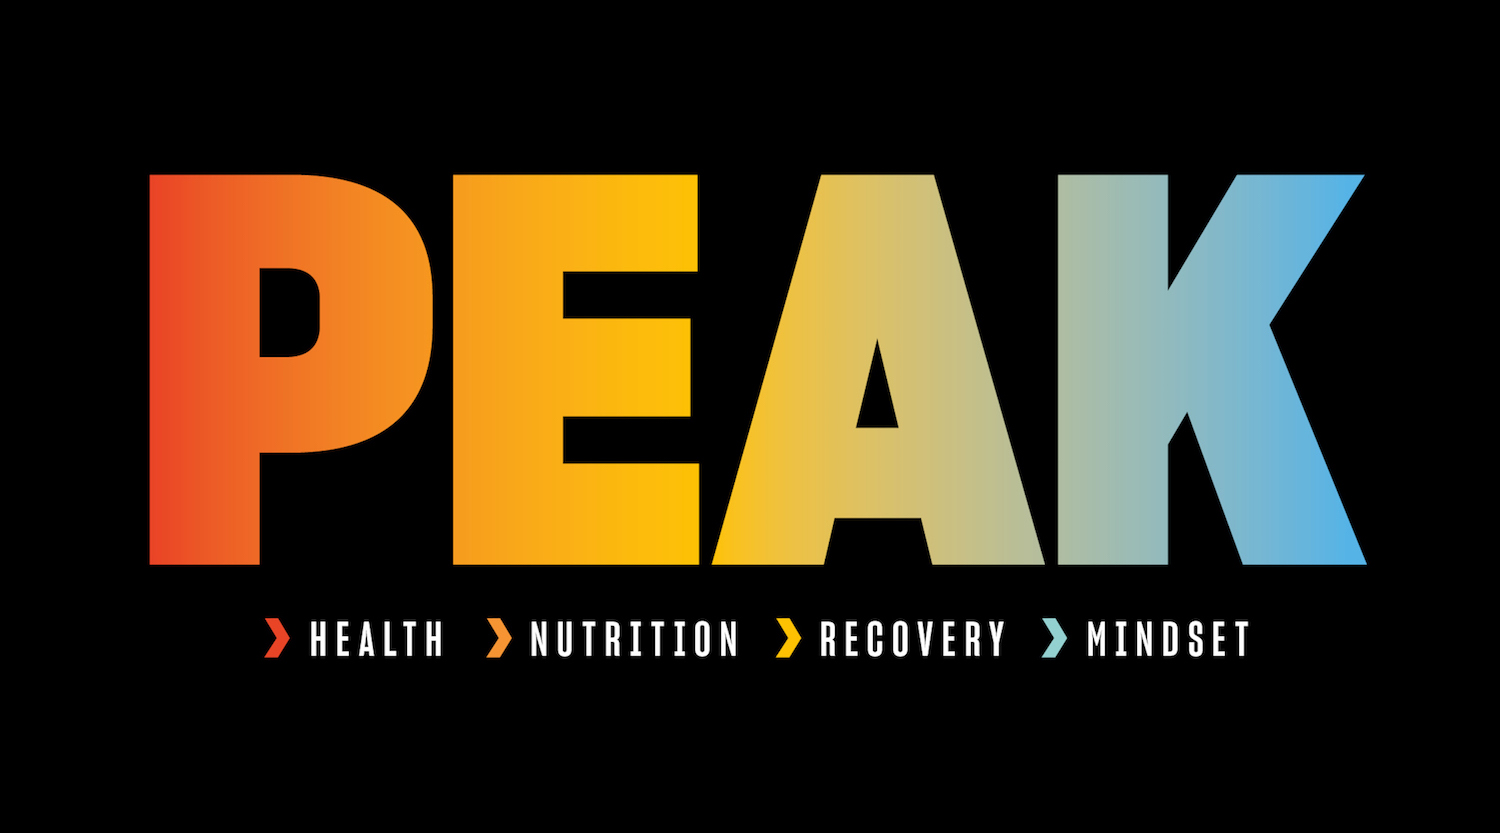 Peak_logo_black_3.jpg